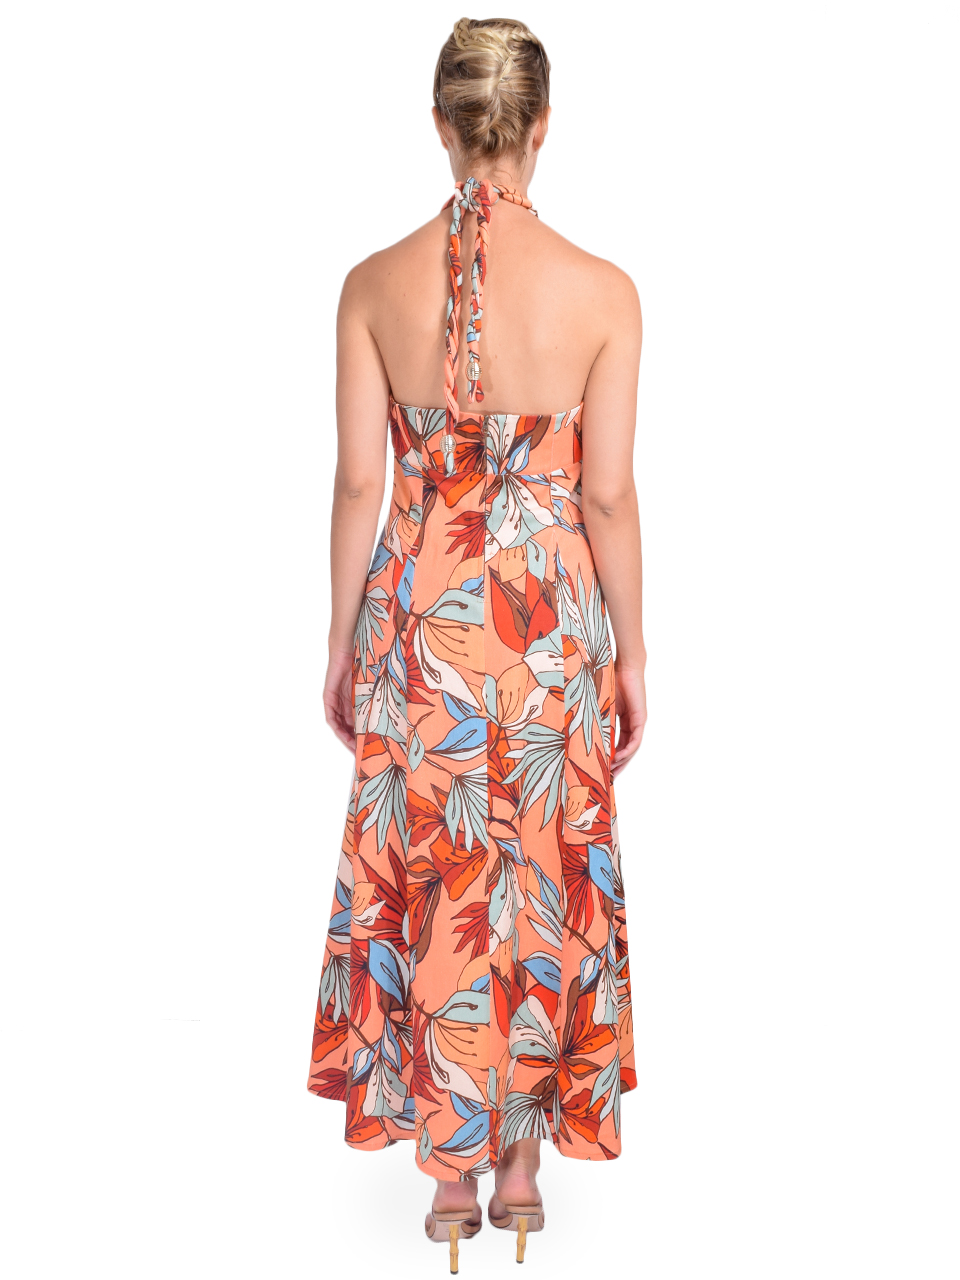 NICHOLAS Tina Dress in Tarama Deco Floral Back View